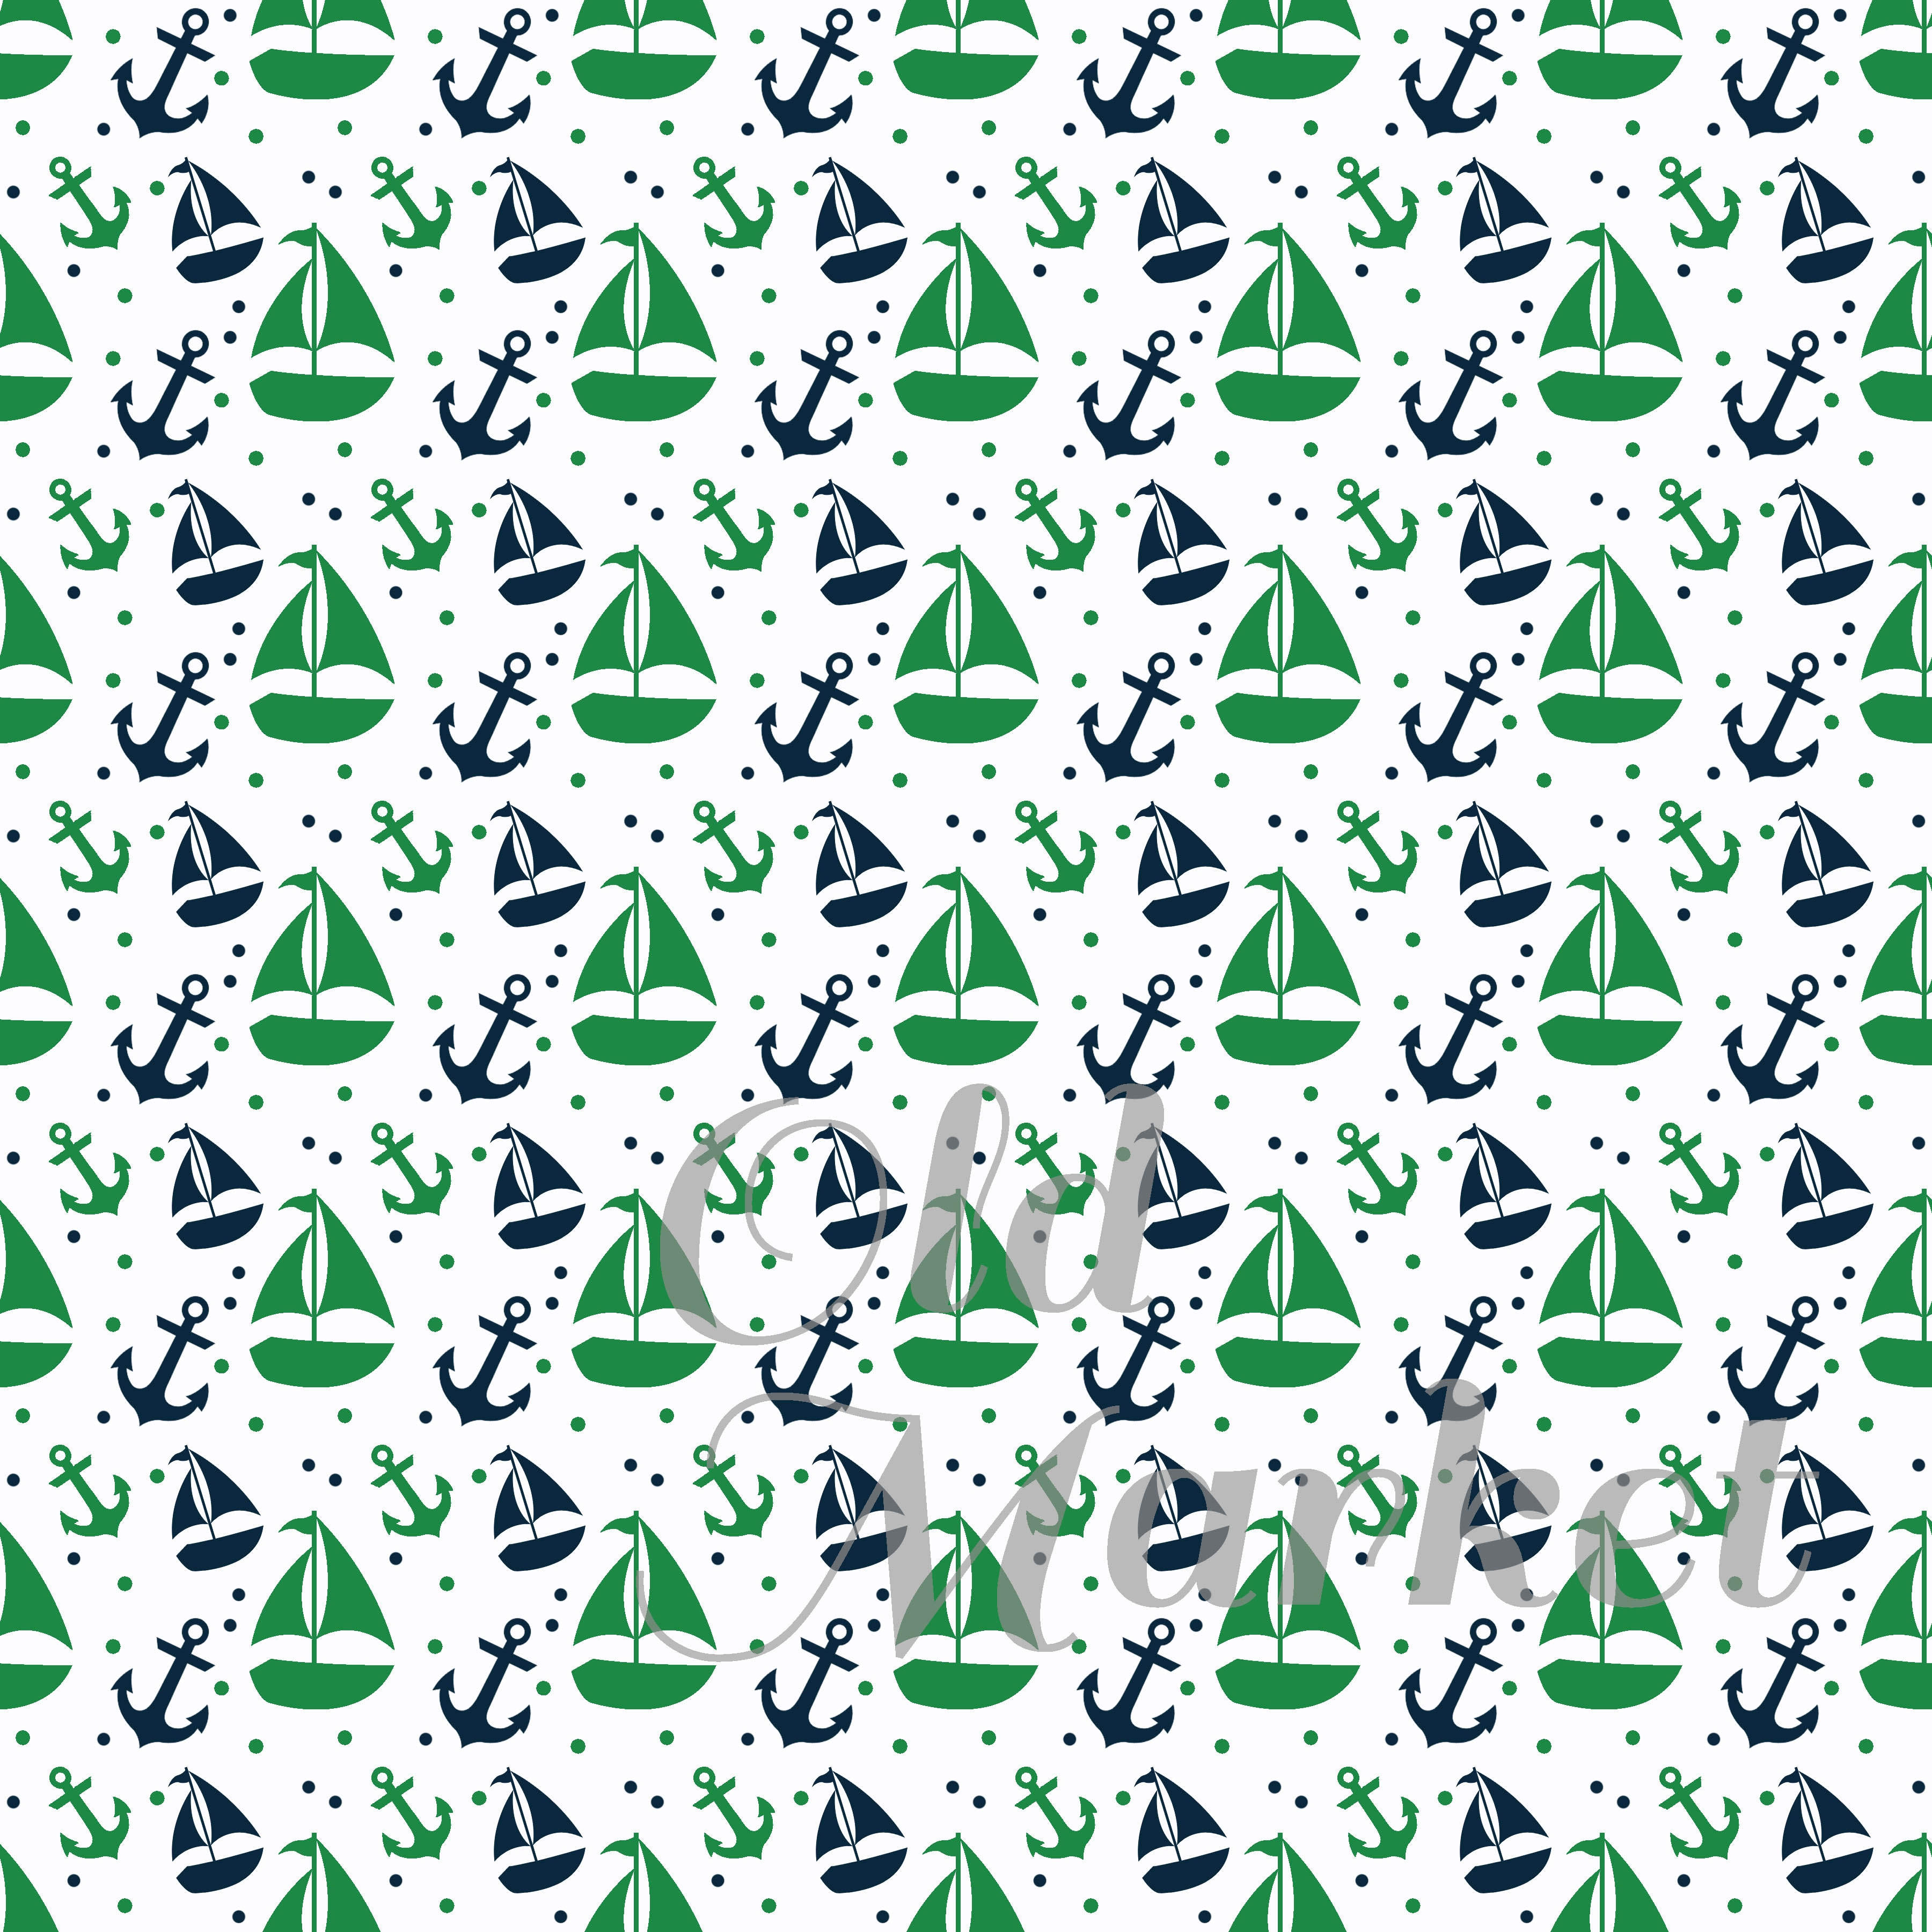 Print on Demand: Green and Navy Nautical Designs Digital Paper Graphic Backgrounds By oldmarketdesigns - Image 3